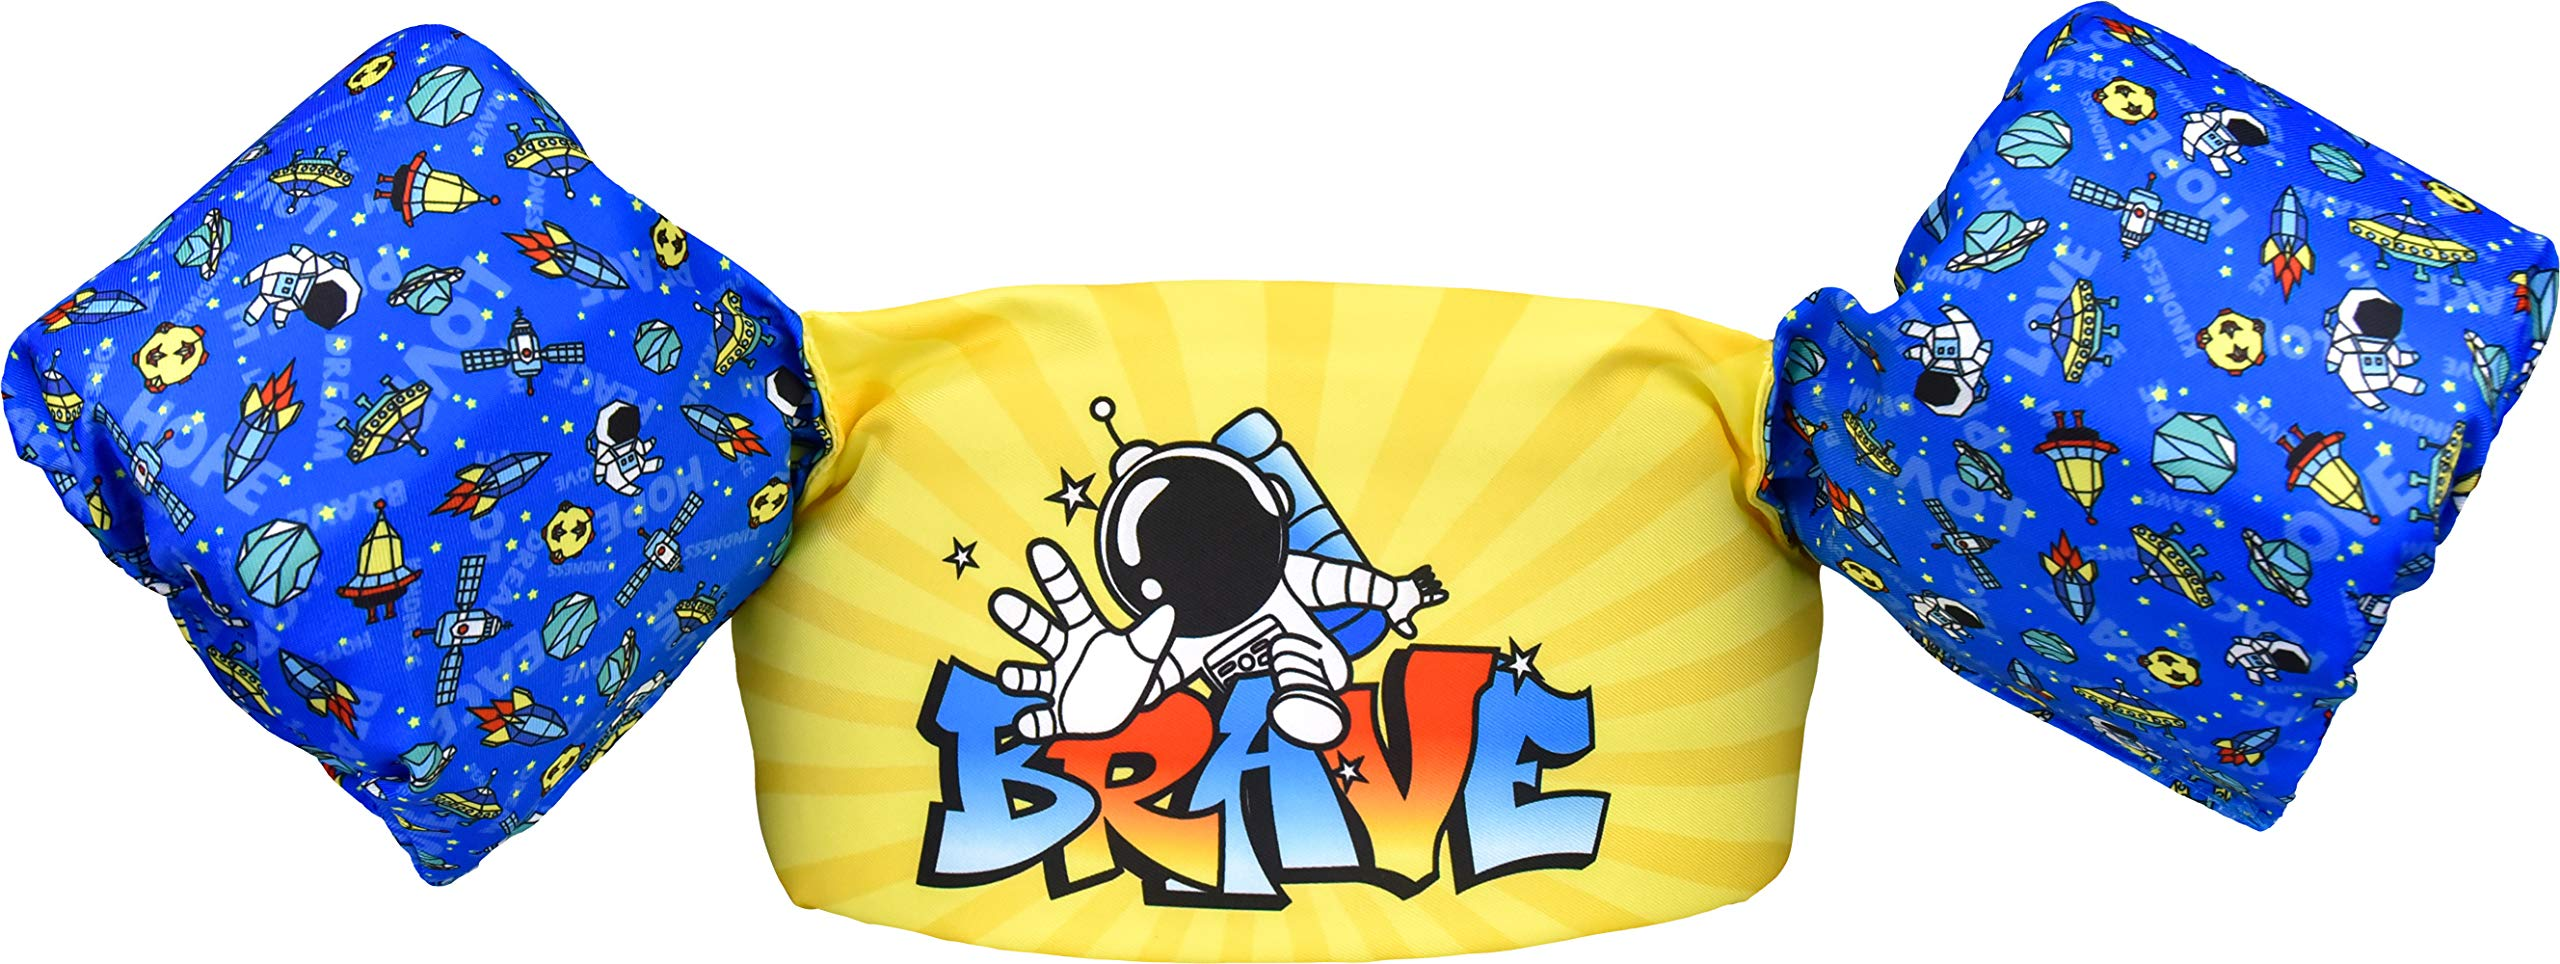 Blue Mars Kids Swim Vests, Floaties for Toddler Girls and Boys from 20 to 50 pounds.